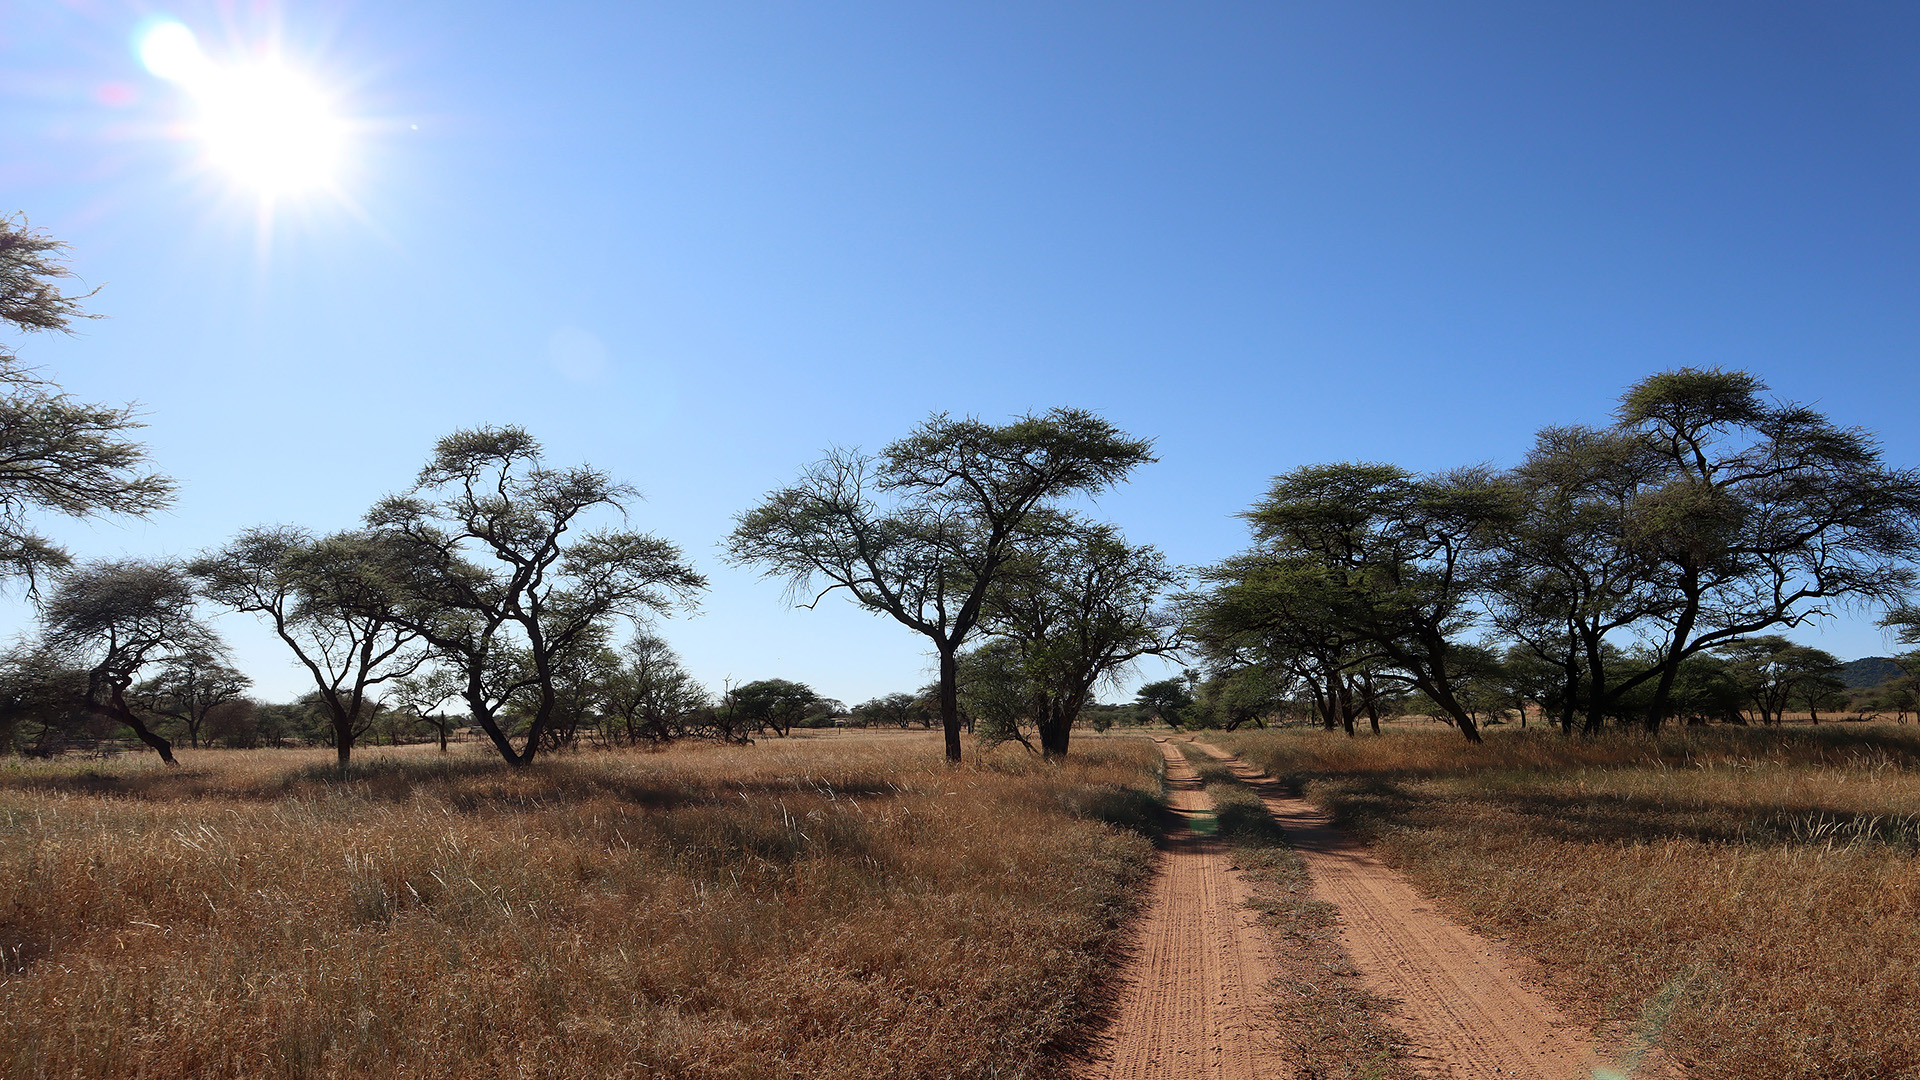 January 2020, on the way to Kalkfeld in Namibia